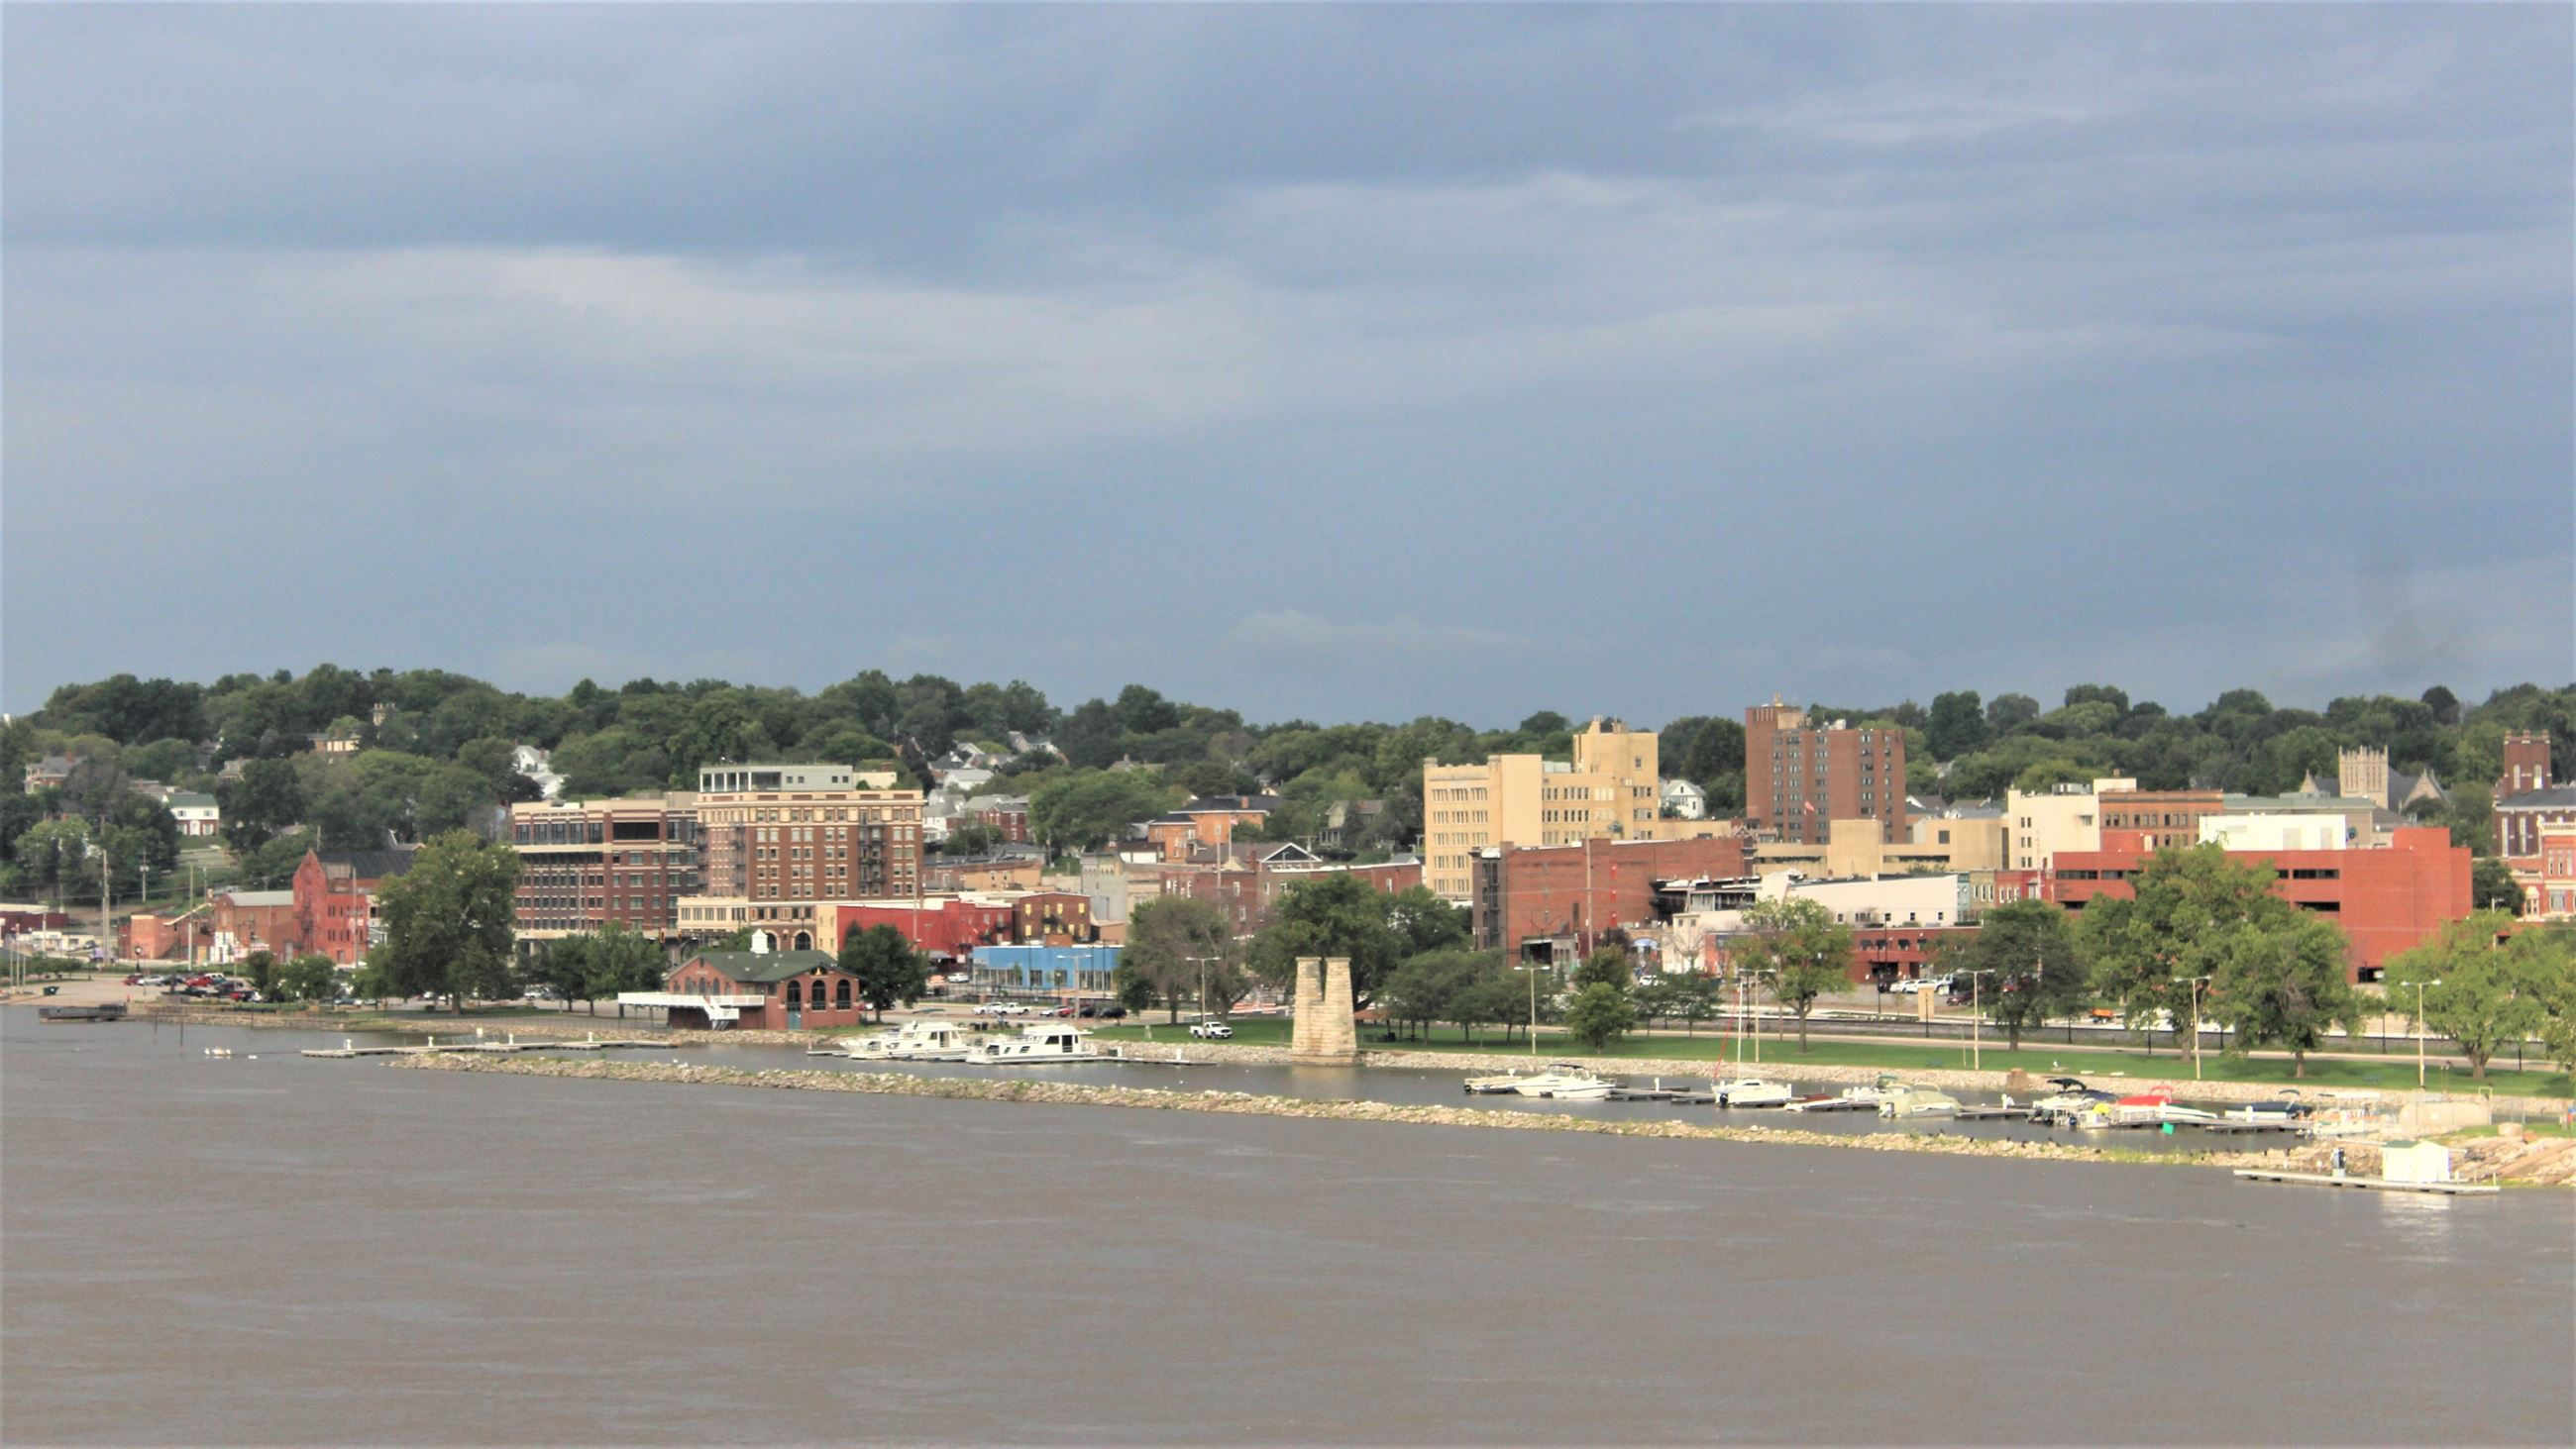 090518 Downtown Muscatine from Beckey Bridge (JPG)